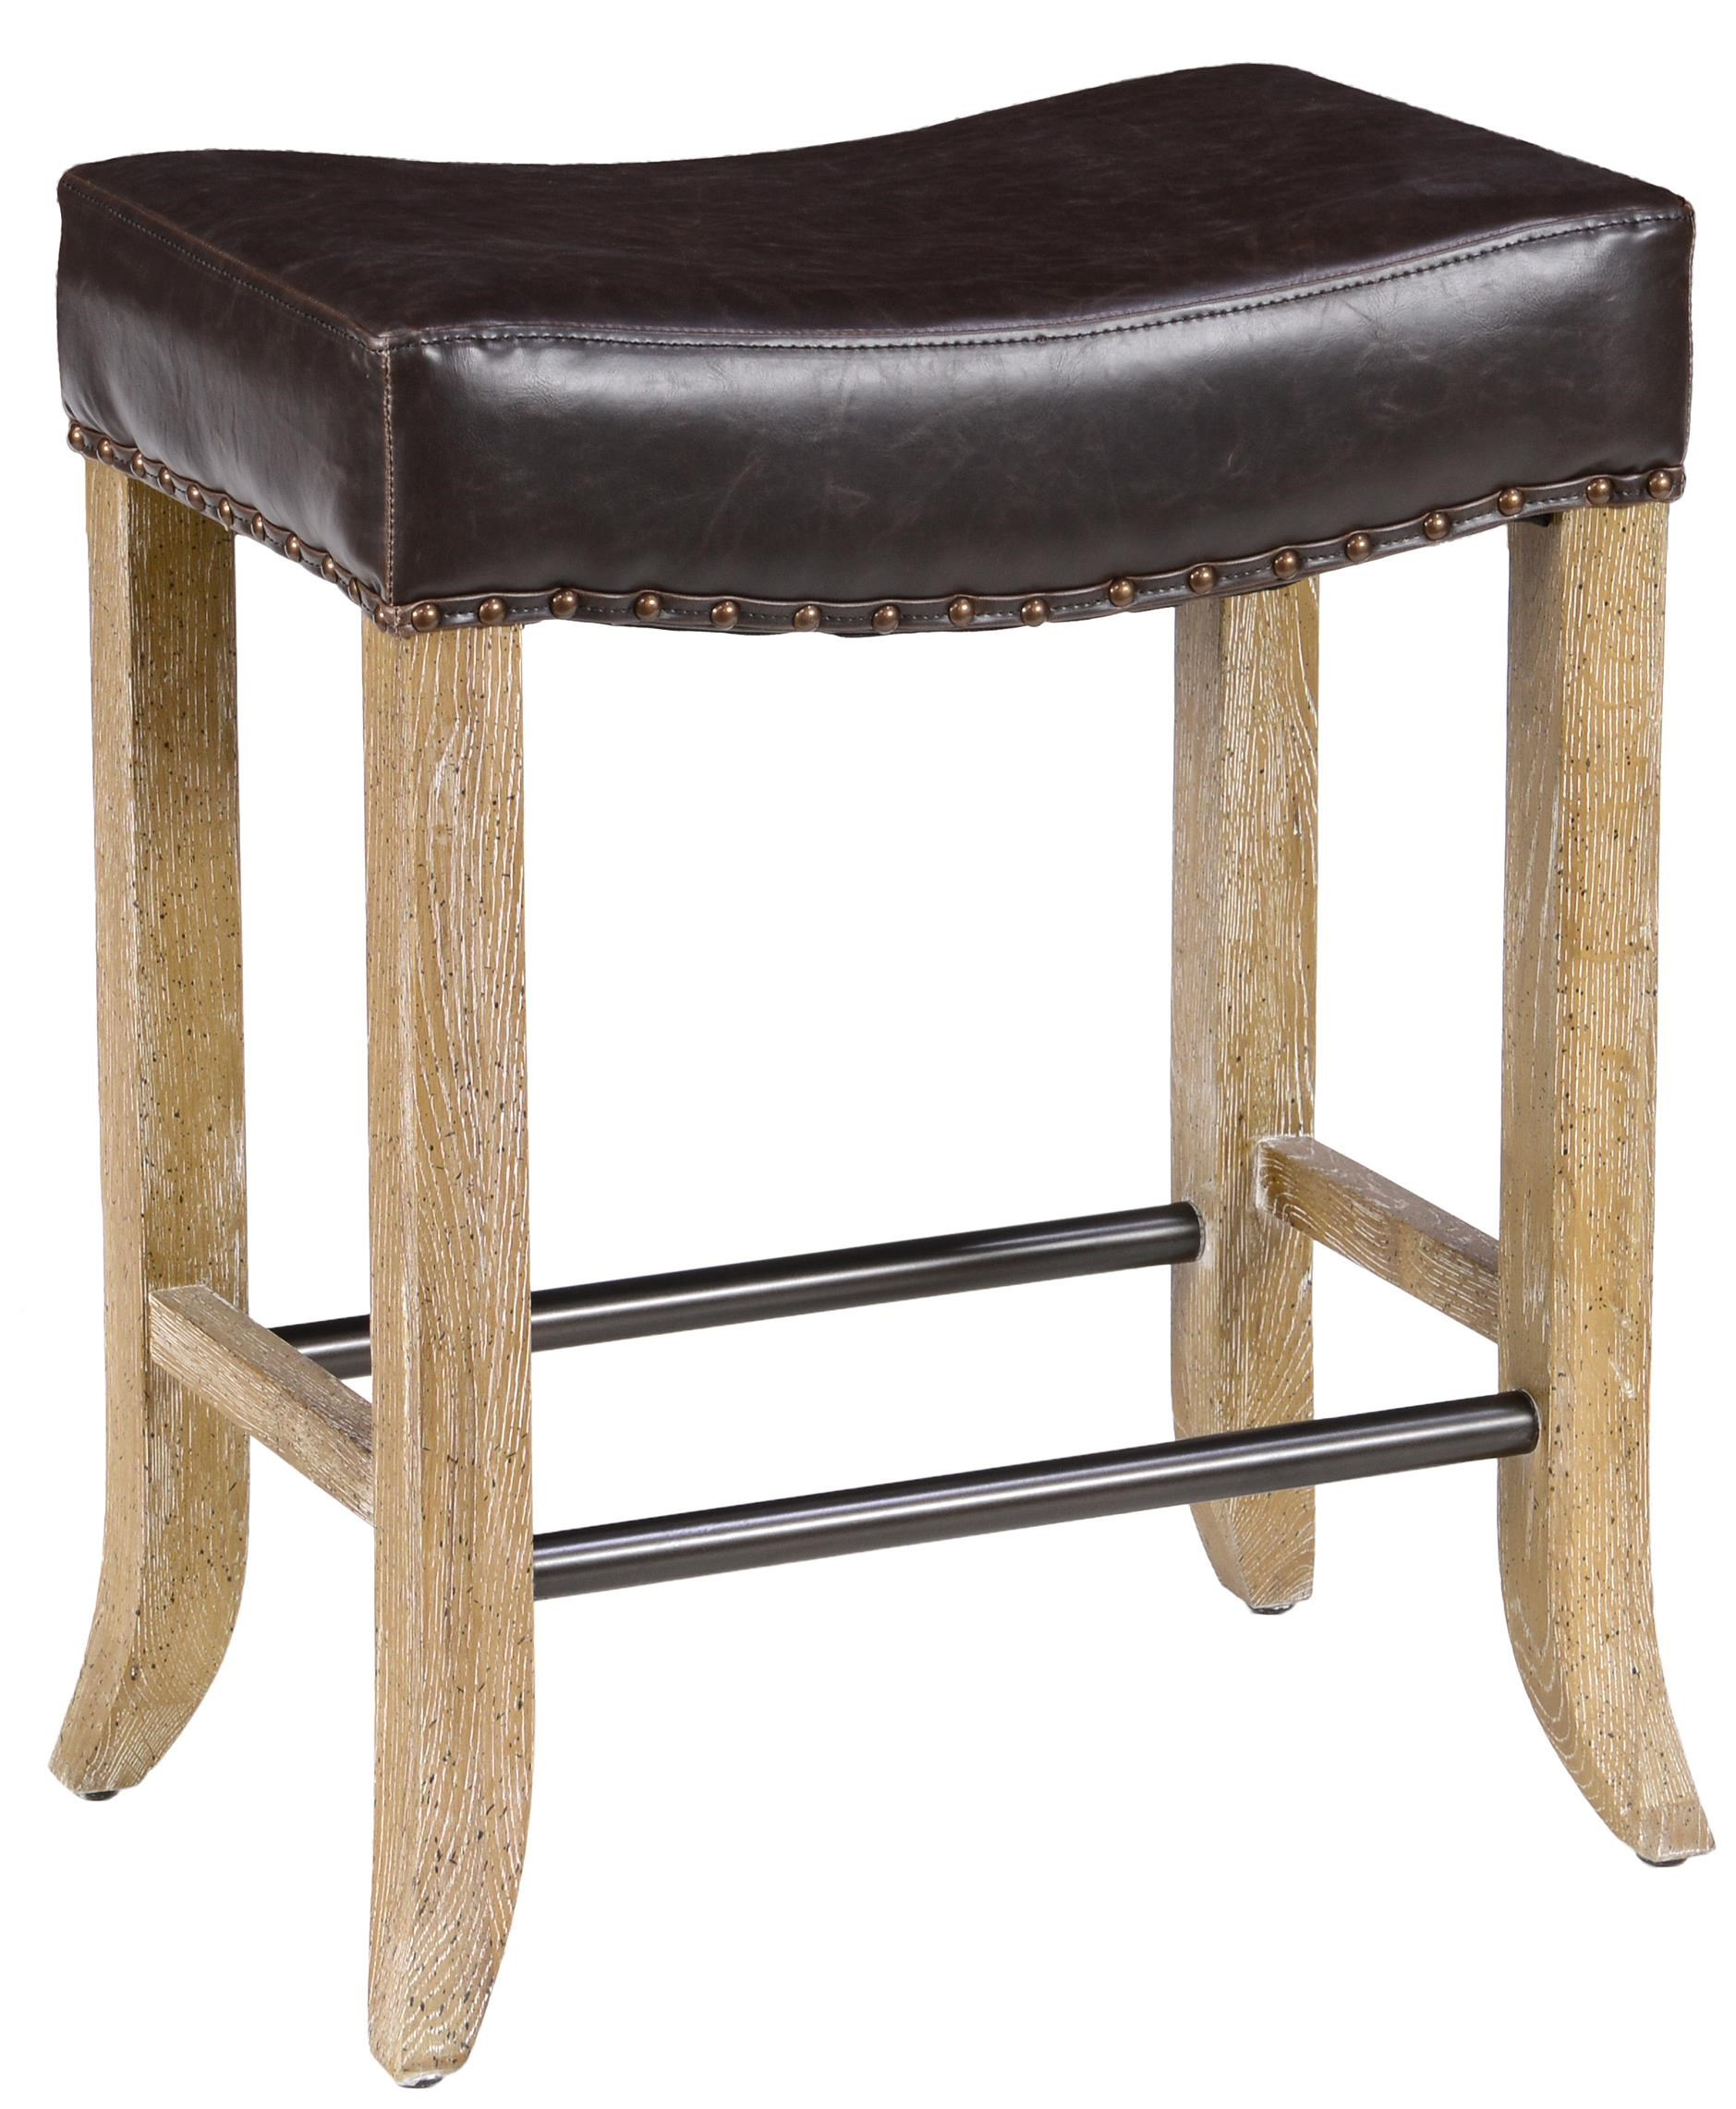 classic home camille backless counter stool with inspired leather seat and flared legs john v schultz furniture bar stool